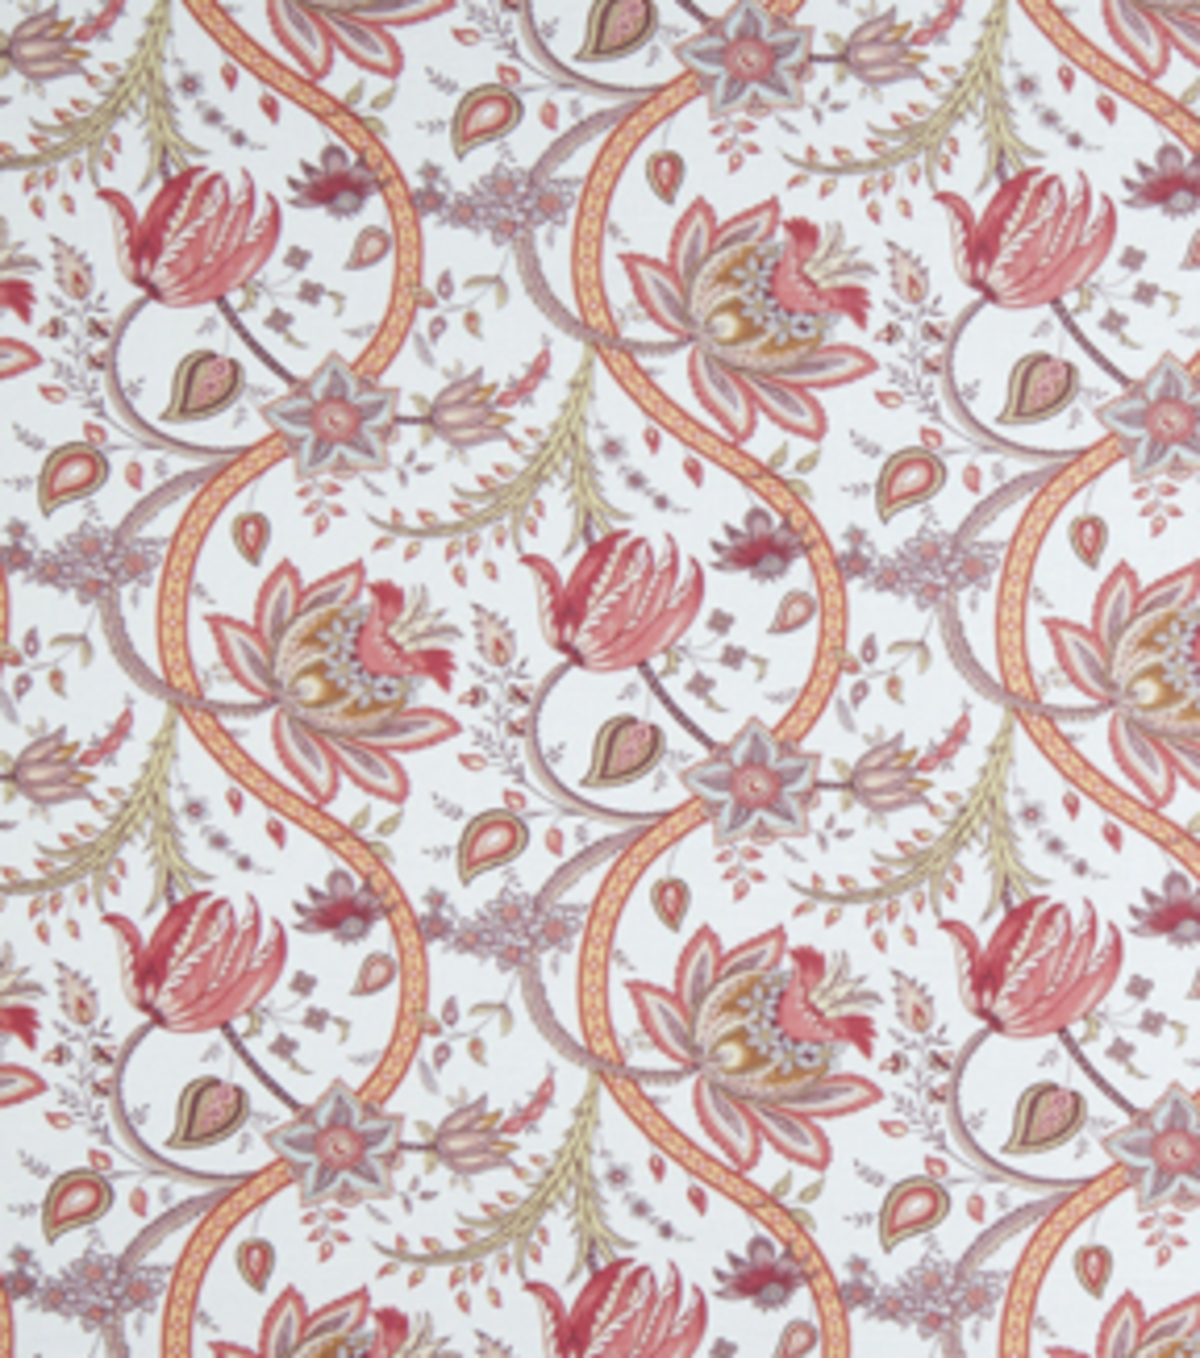 Home Decor 8\u0022x8\u0022 Fabric Swatch-Upholstery Fabric Eaton Square Griffin Cerise